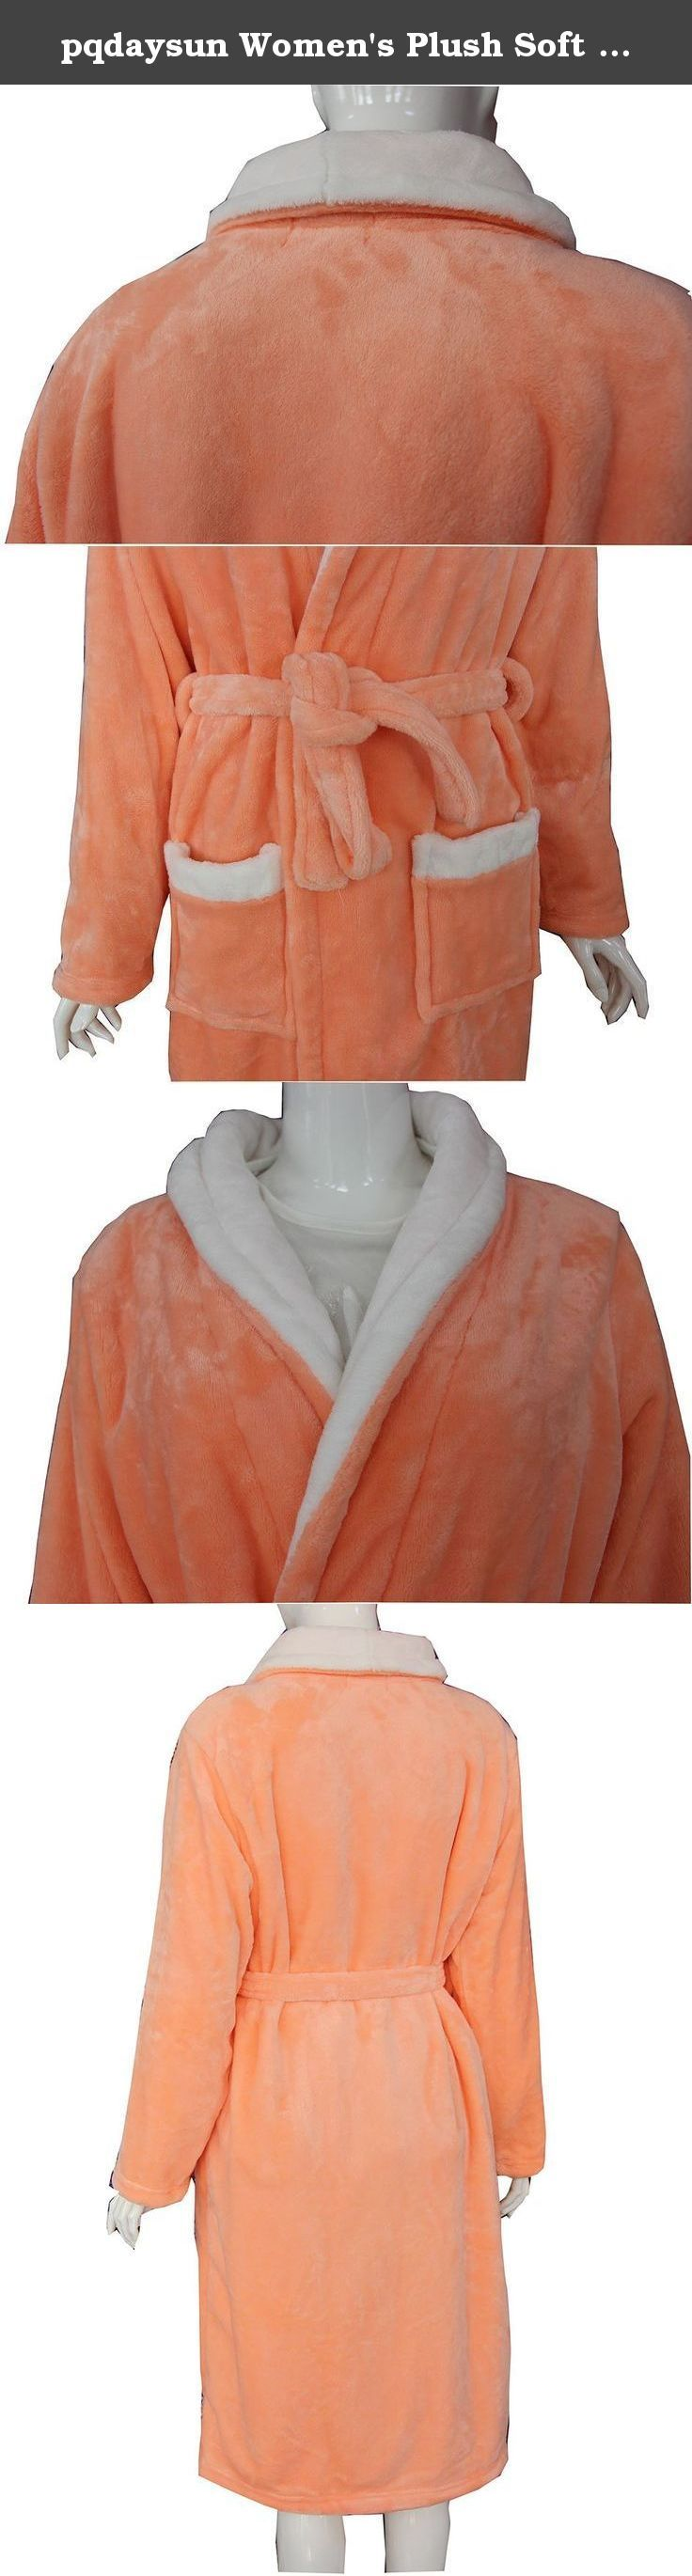 pqdaysun Women's Plush Soft Warm Flannel Bathrobe Spa Robe Kimono Wrap Sleepwear Orange. pqdaysun is a brand designed for men or women offering casual style with highest qualities. We bring customers to a different outlook on life of fashion. Warm, cozy women's Bathrobe , soft flannel Fabric, A self-belt cinches the waist of this cozy shawl-collar robe . Improved manufacturing process yields stronger fabric and superior stitching. This lightweight bathrobe is perfect for all day wear and...